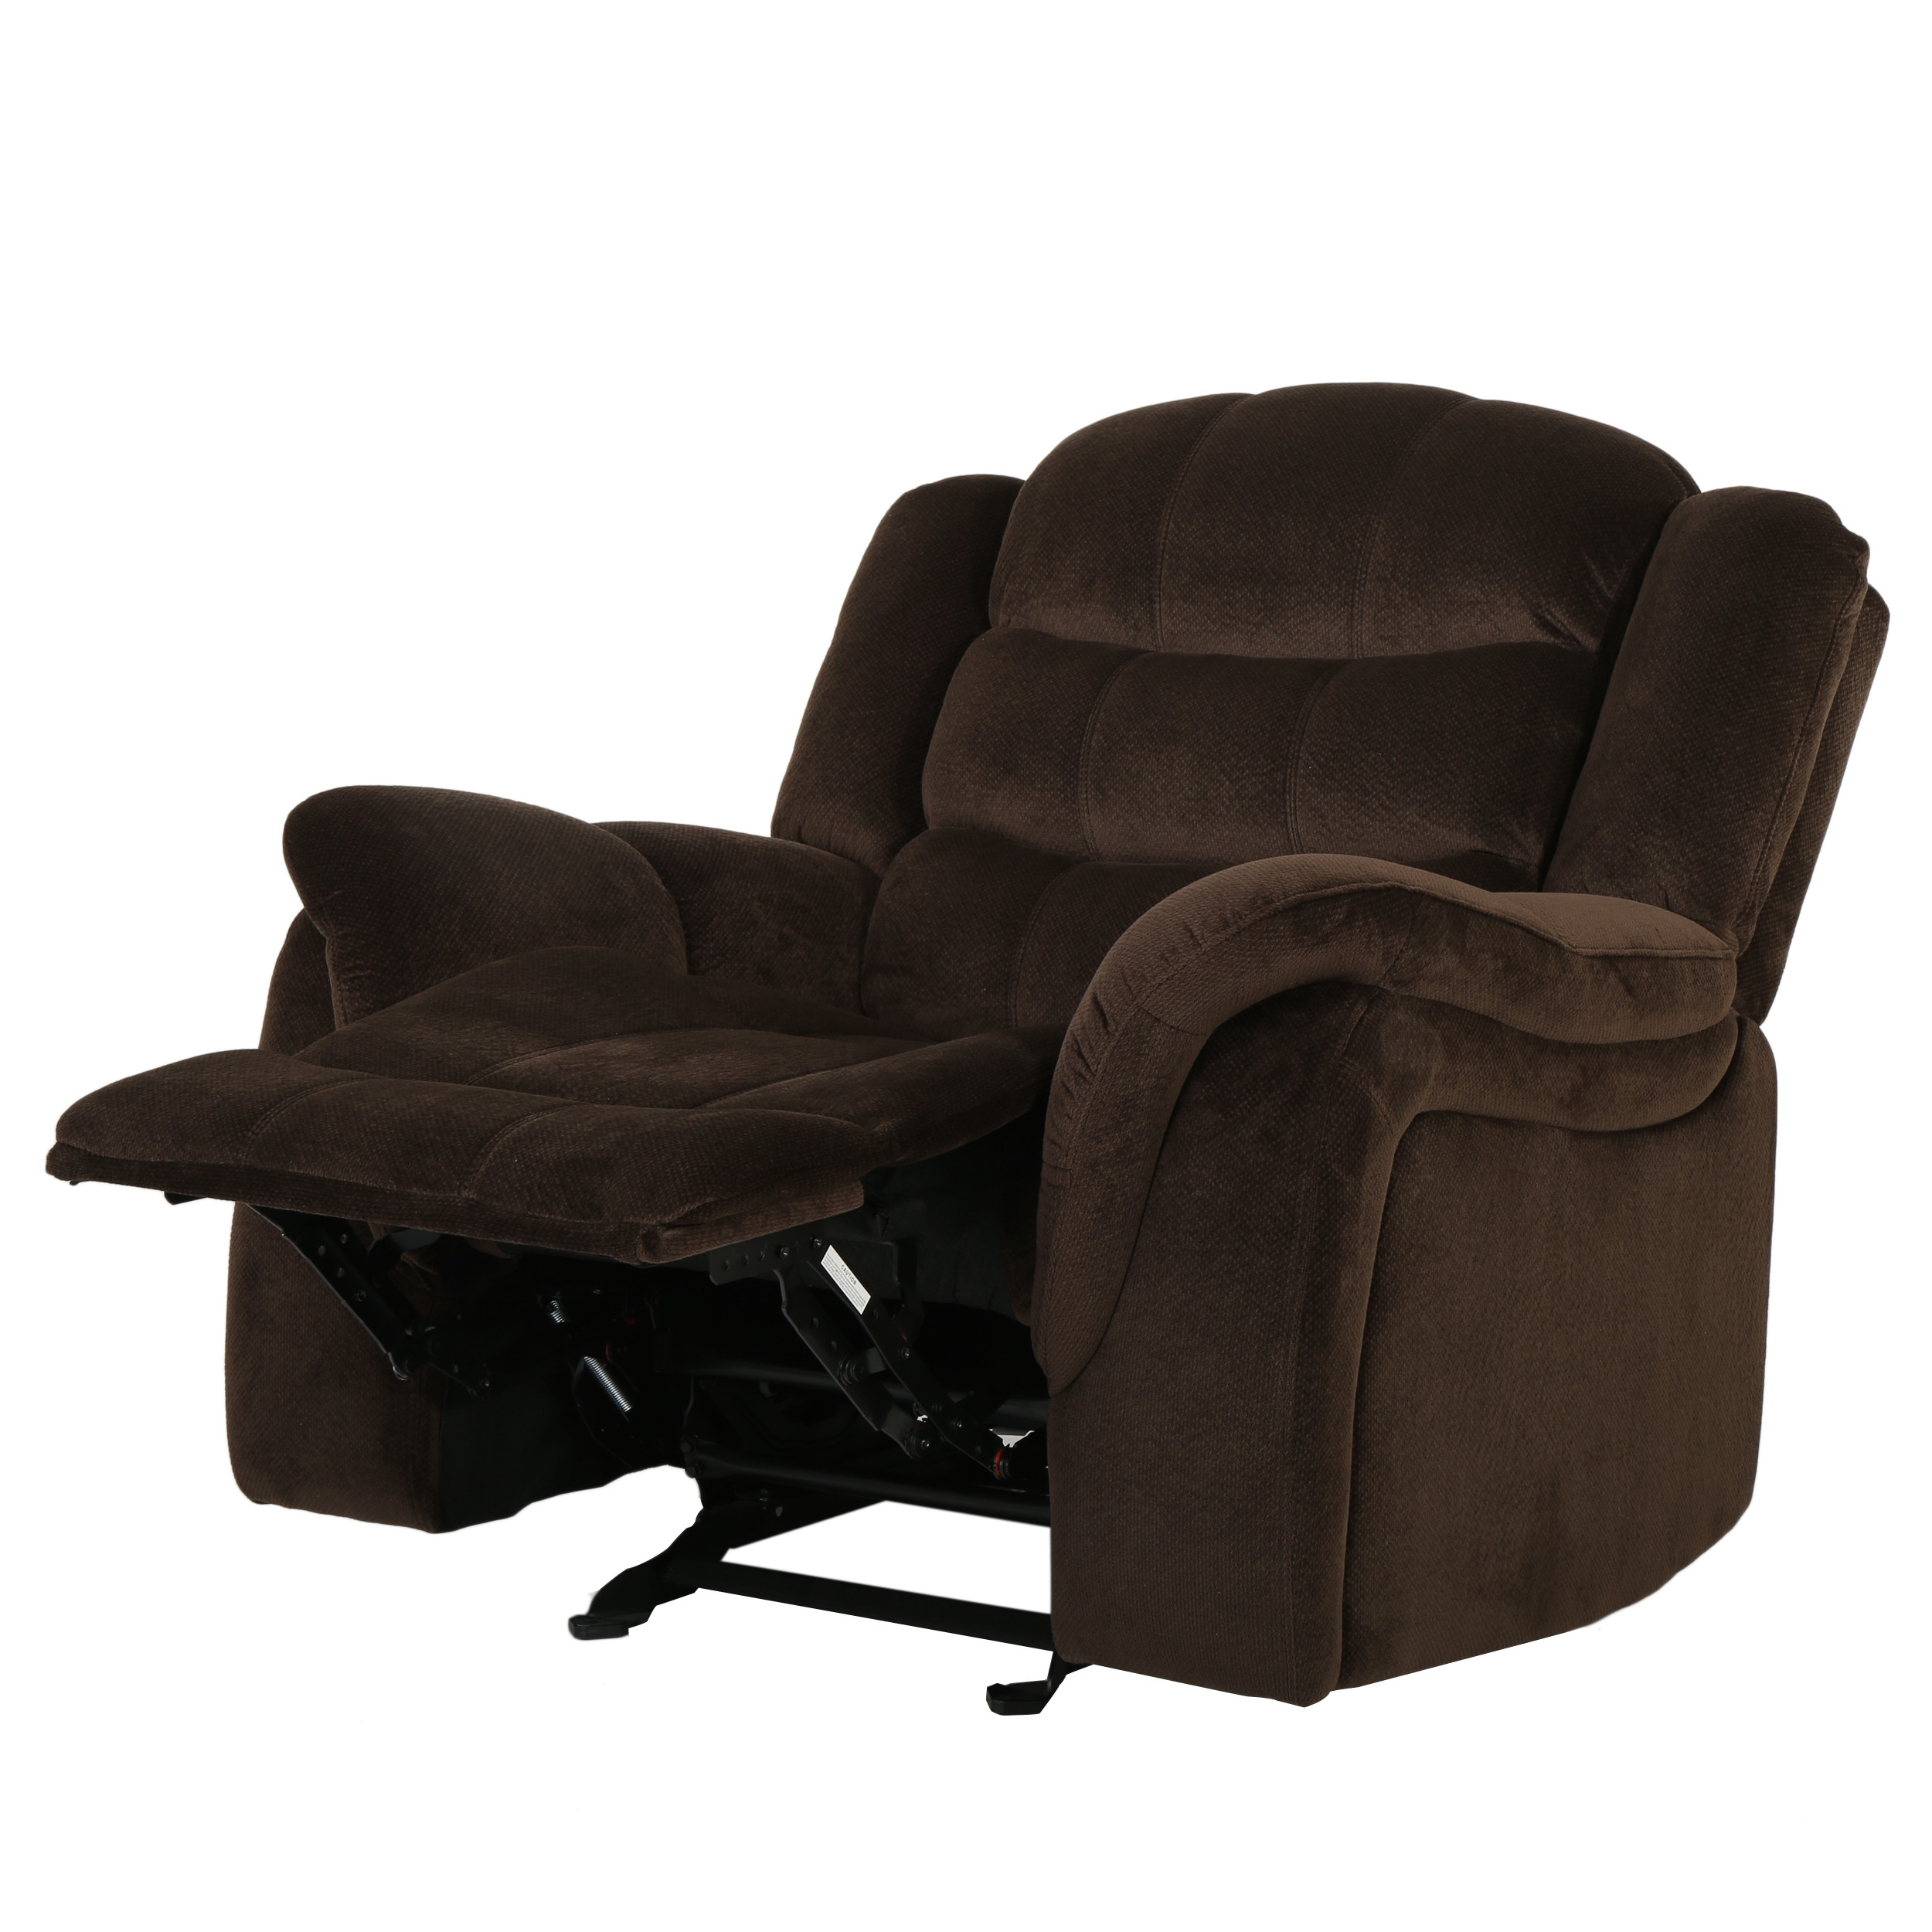 Glider Recliner | Reclining Glider with Ottoman | Toys R Us Rocking Chair